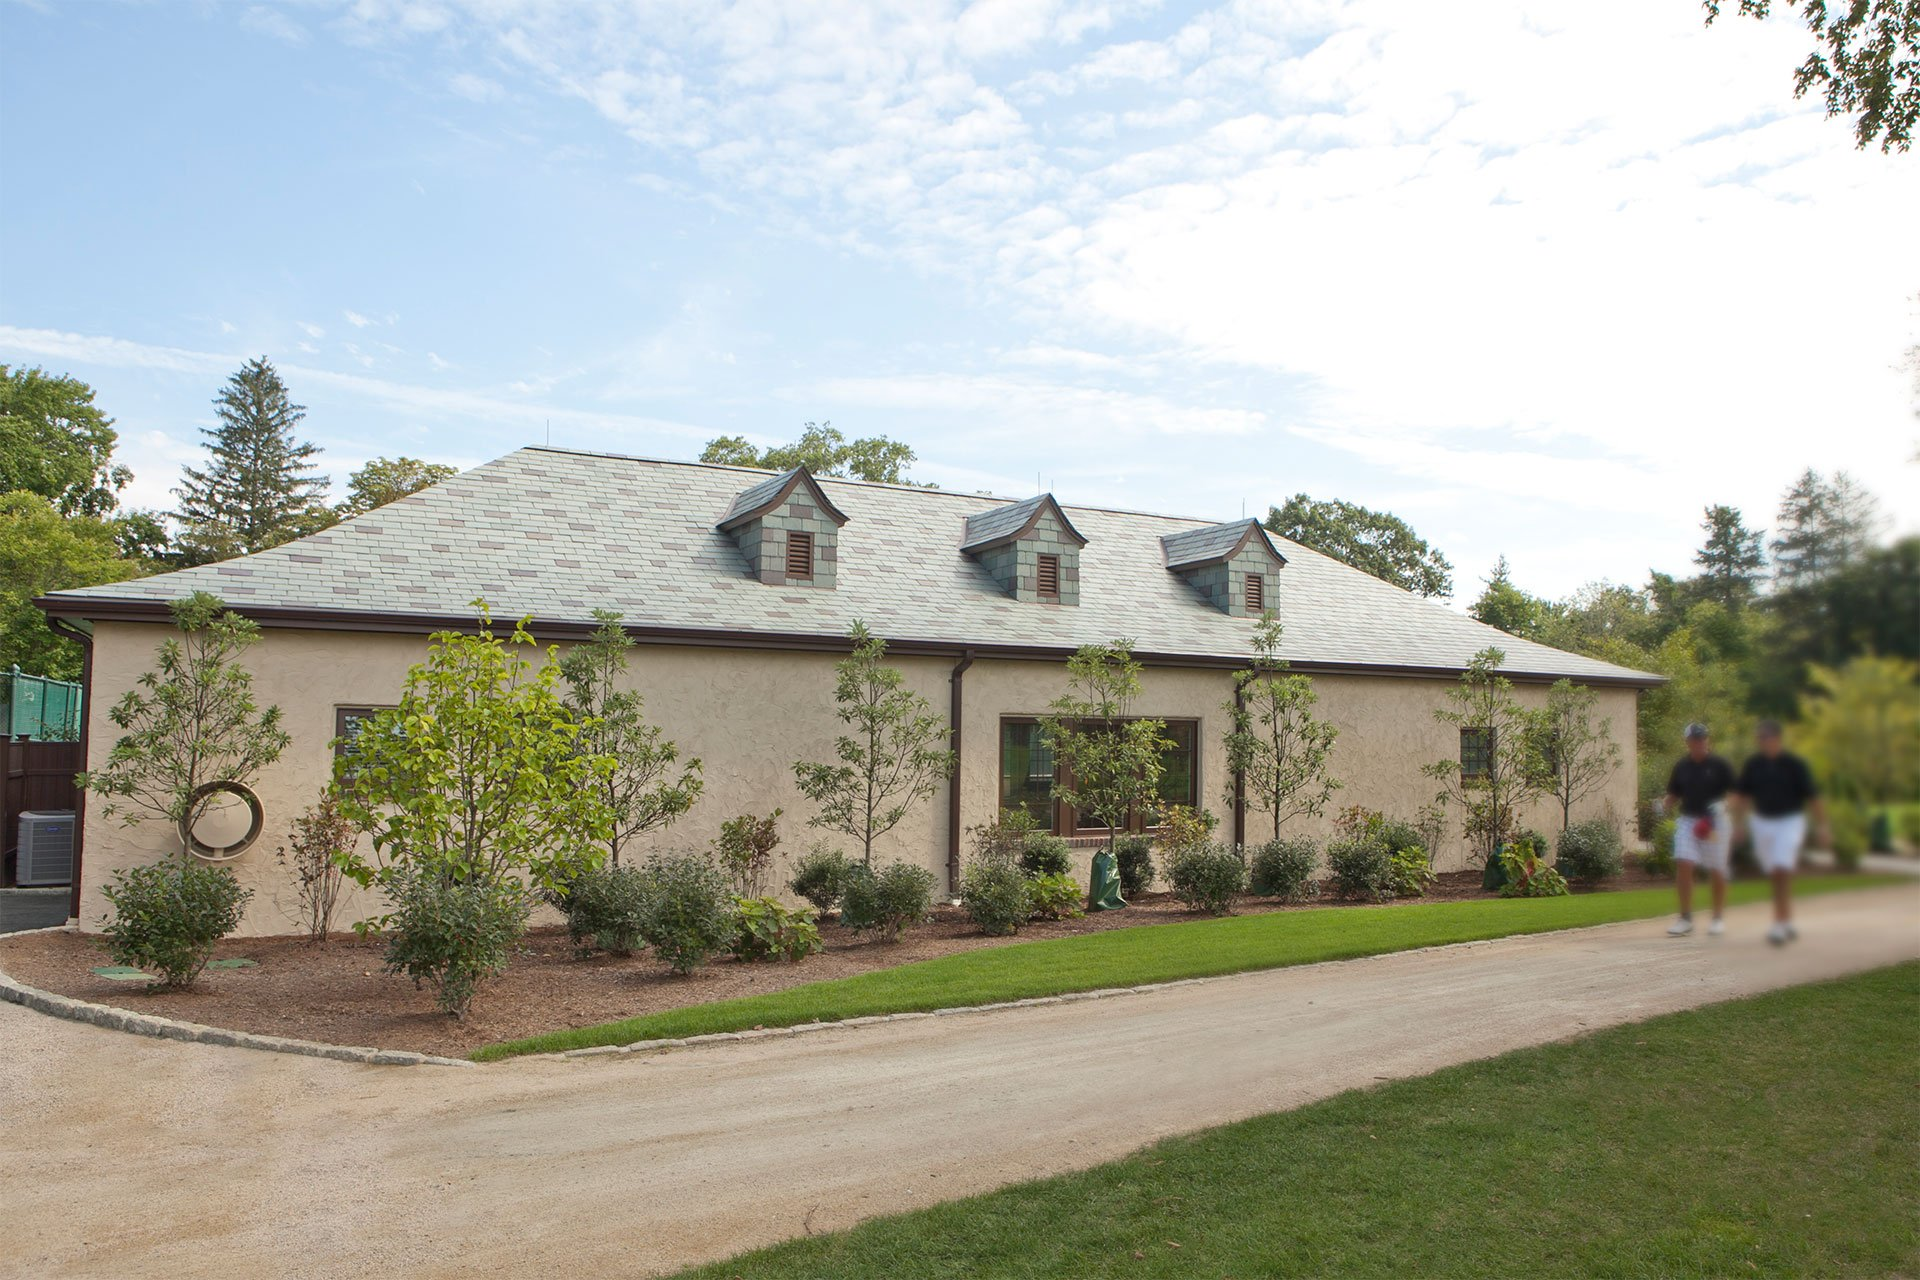 murphy-brothers-contracting-commercial-commercial-quaker-ridge-exterior-15